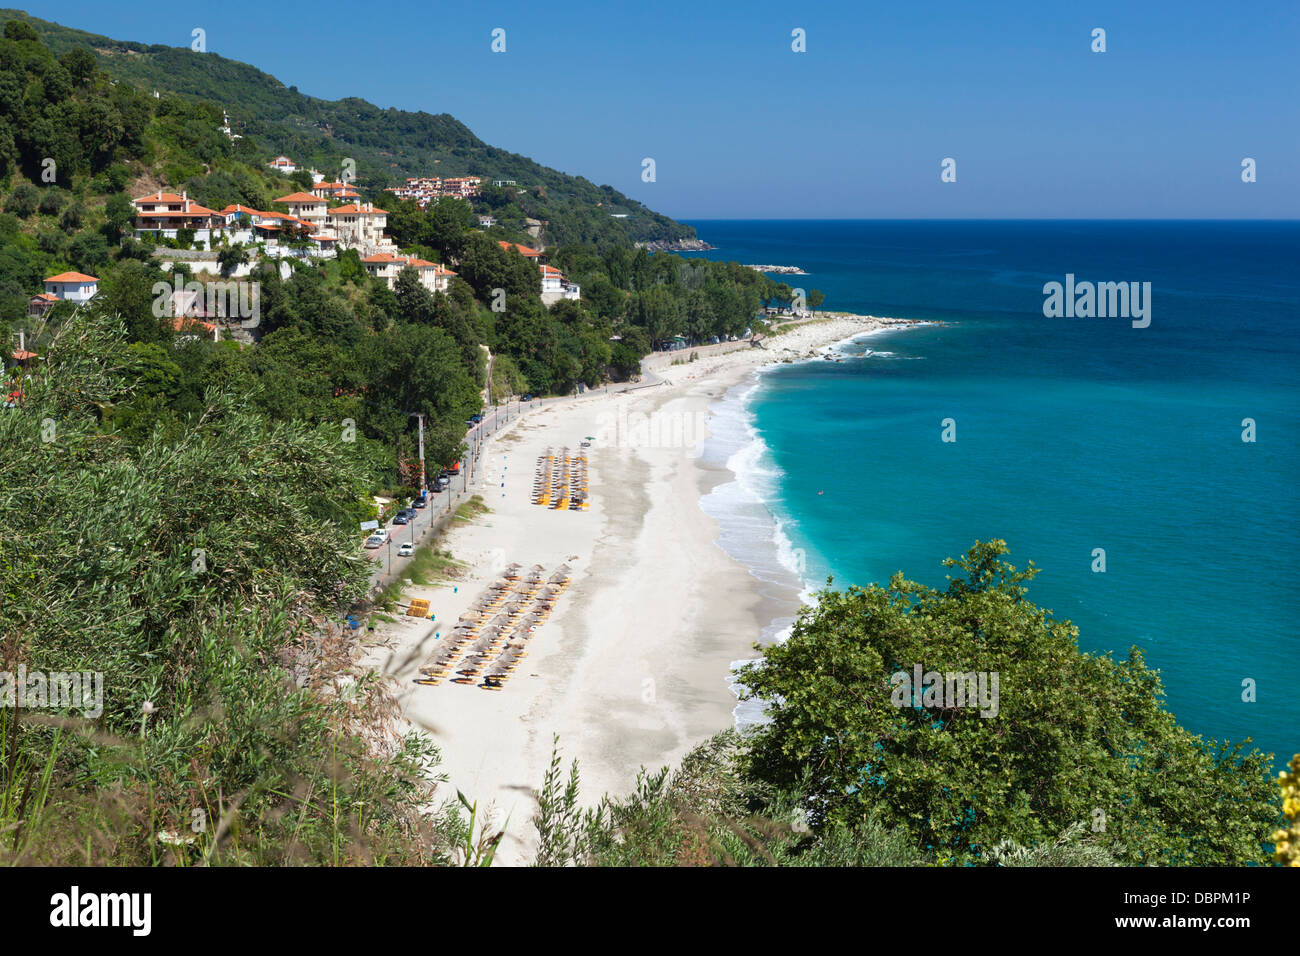 Plage de Papa Nero, Agios Ioannis, Pelion, Thessalie, Grèce, Europe Photo Stock